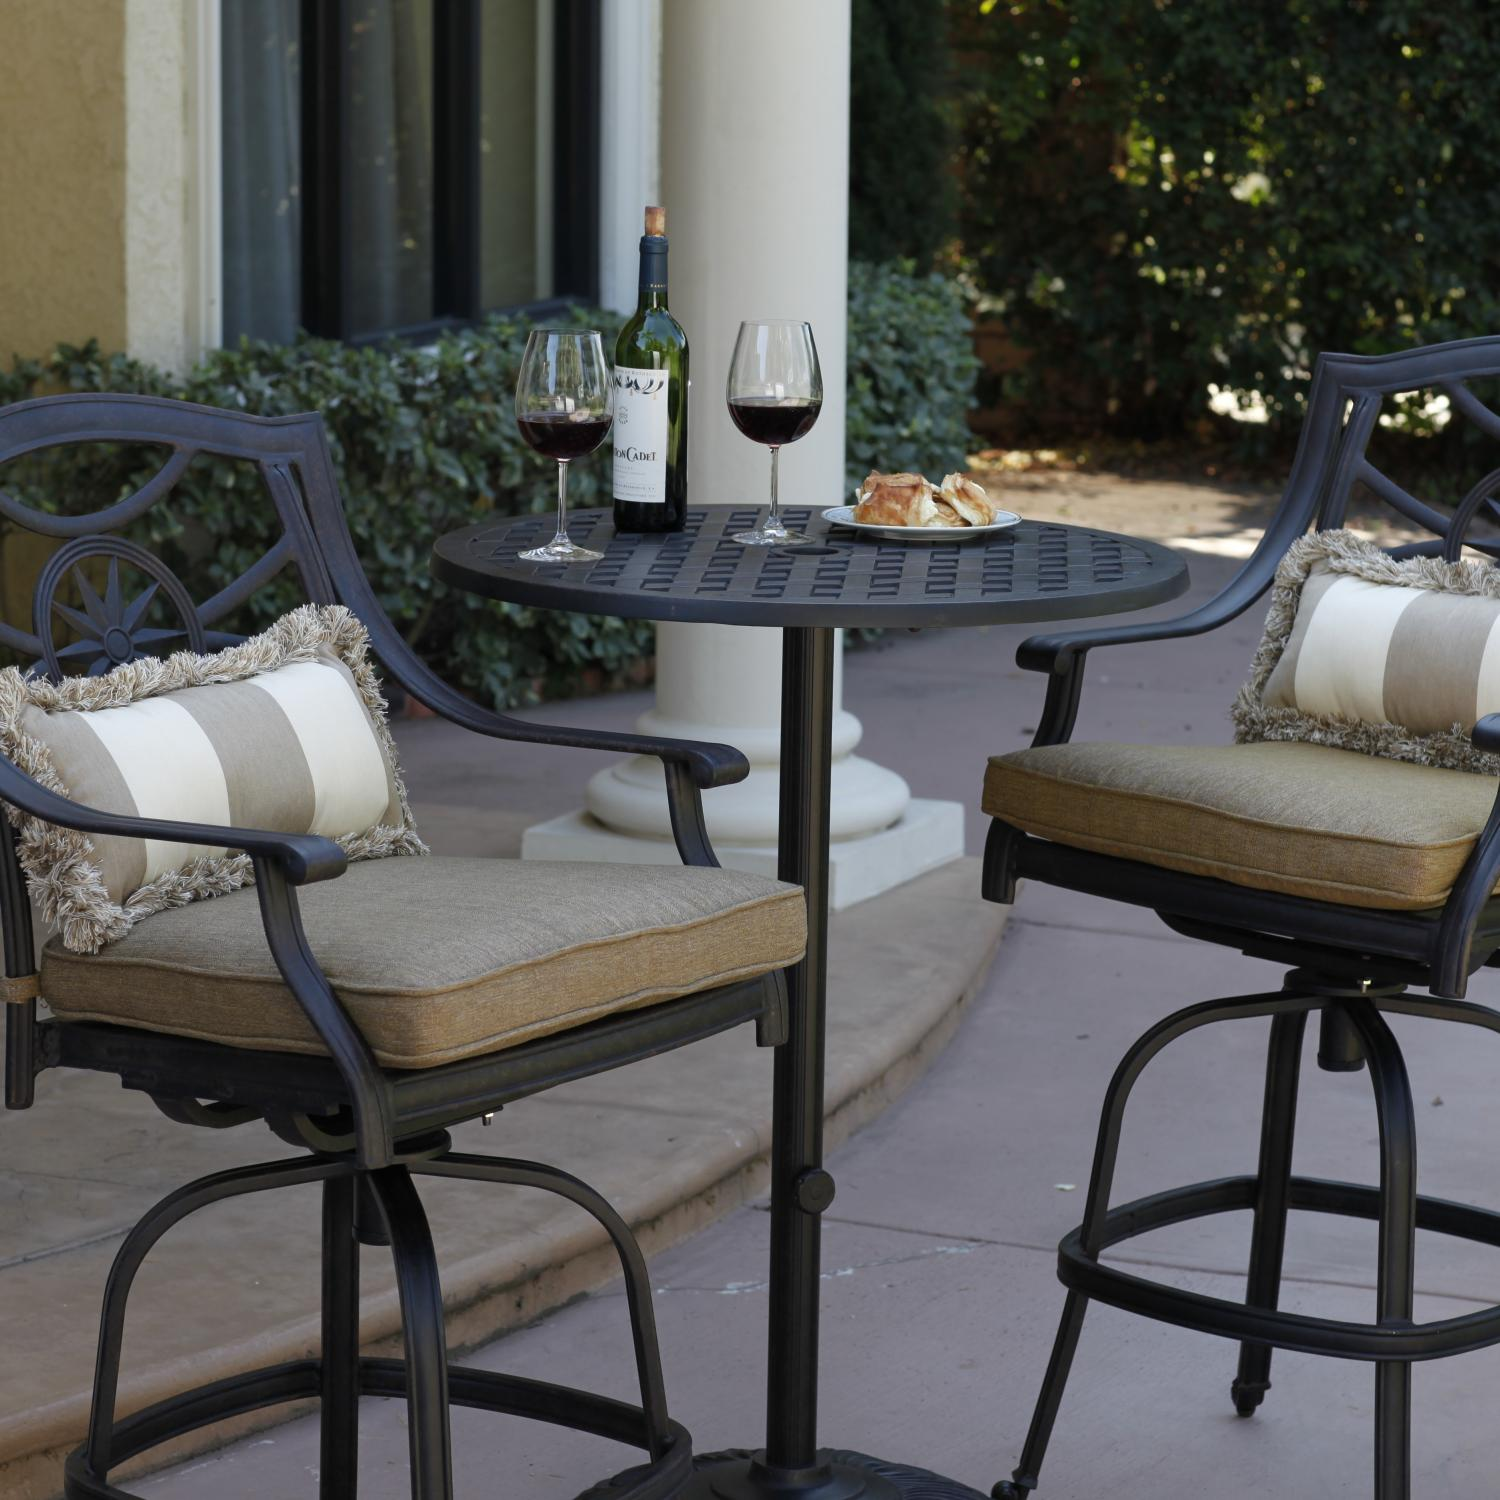 Darlee Ten Star 3 Piece Cast Aluminum Patio Bar Set